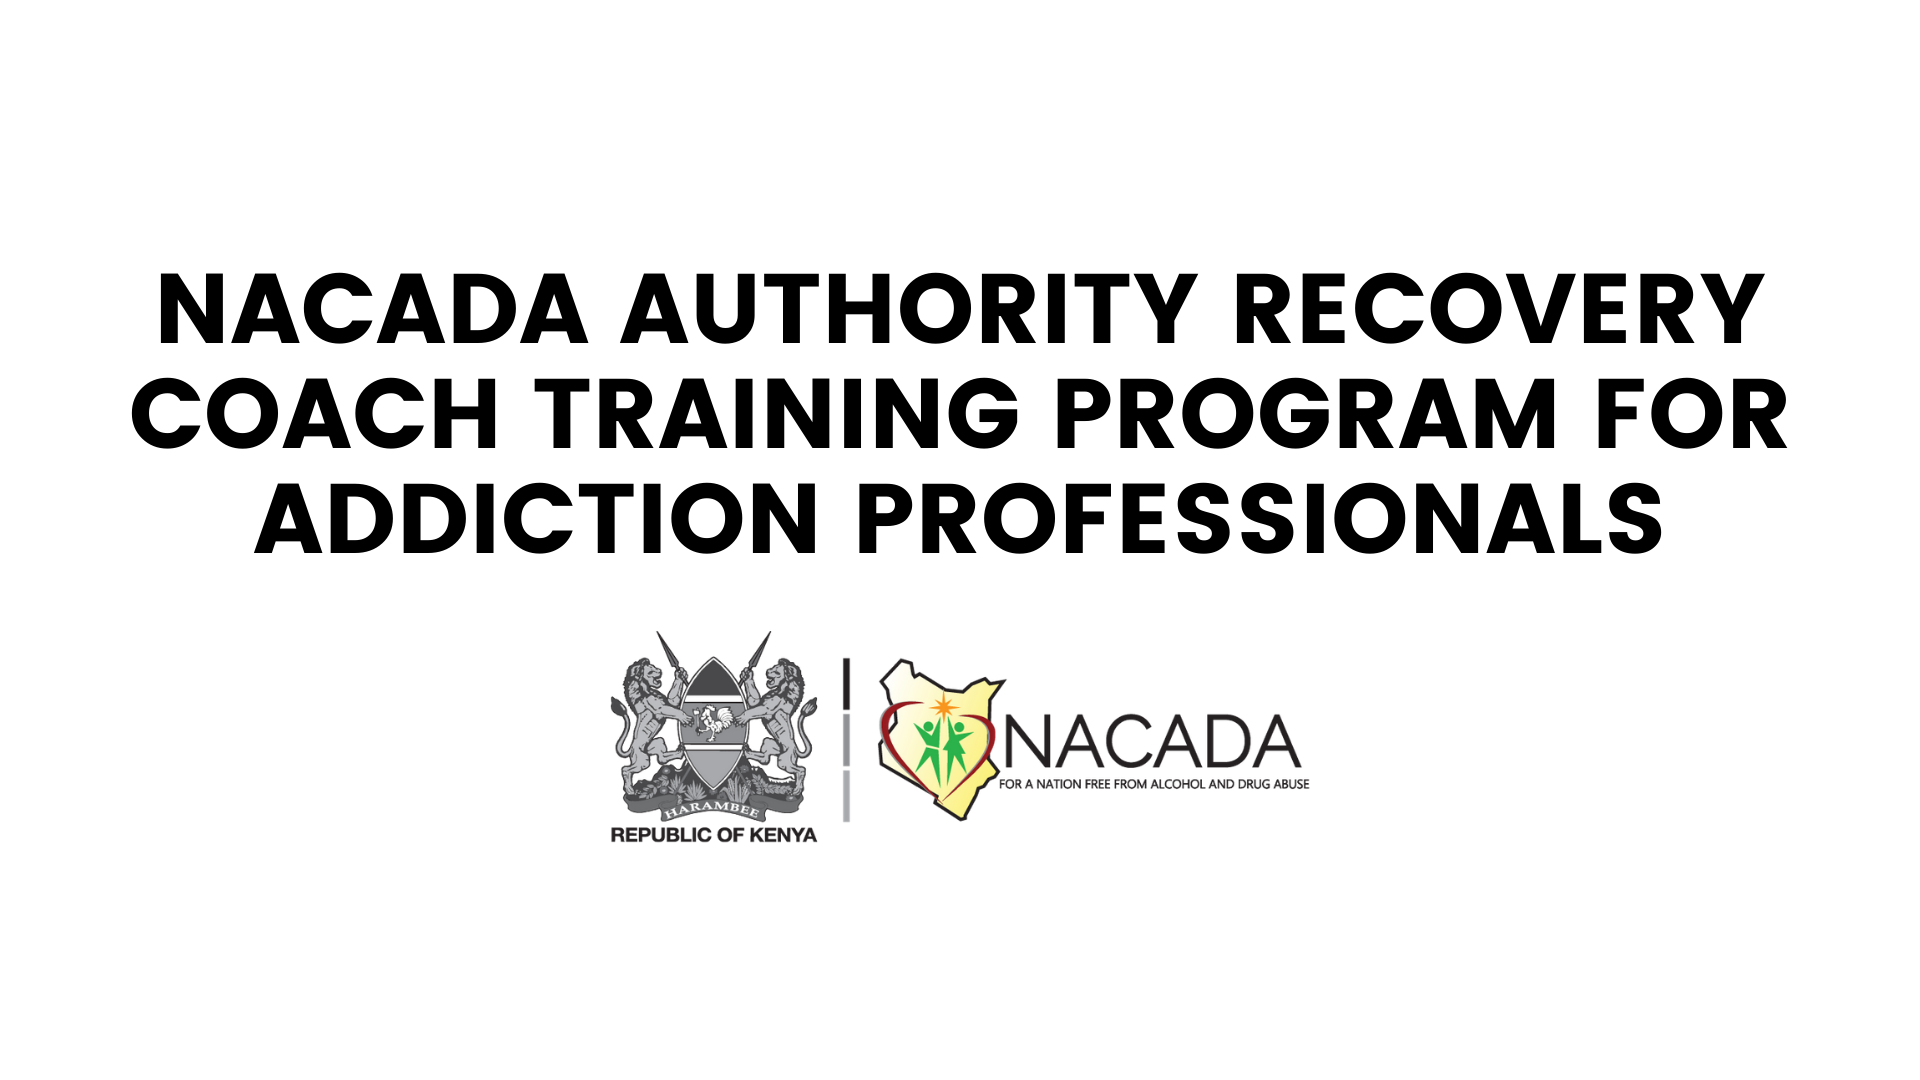 NACADA AUTHORITY RECOVERY COACH TRAINING PROGRAM FOR ADDICTION PROFESSIONALS